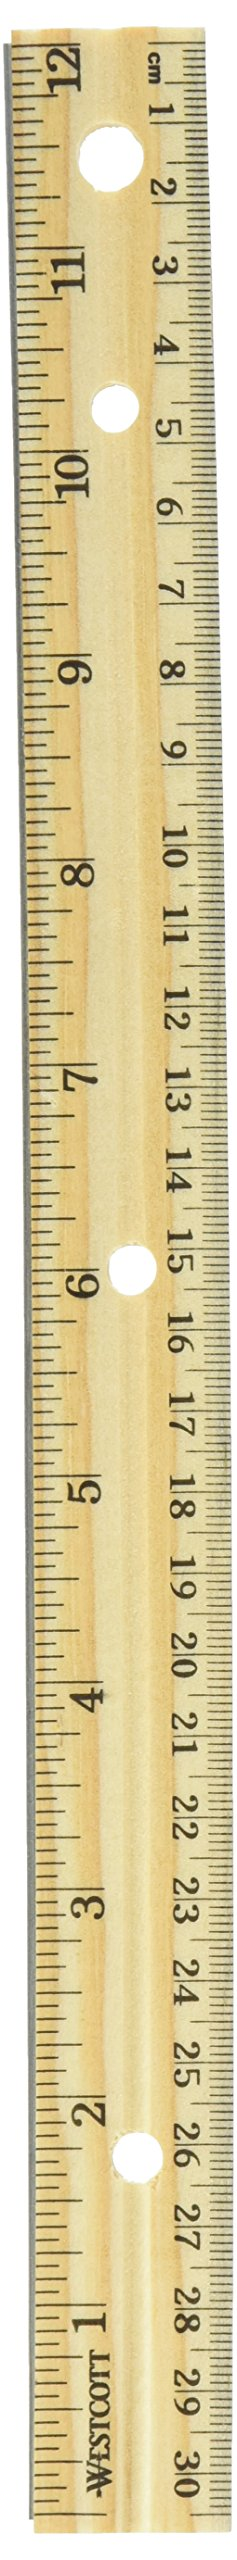 Westcott Hole Punched Wood Ruler English and Metric With Metal Edge, 12 Inches, 2 Packs